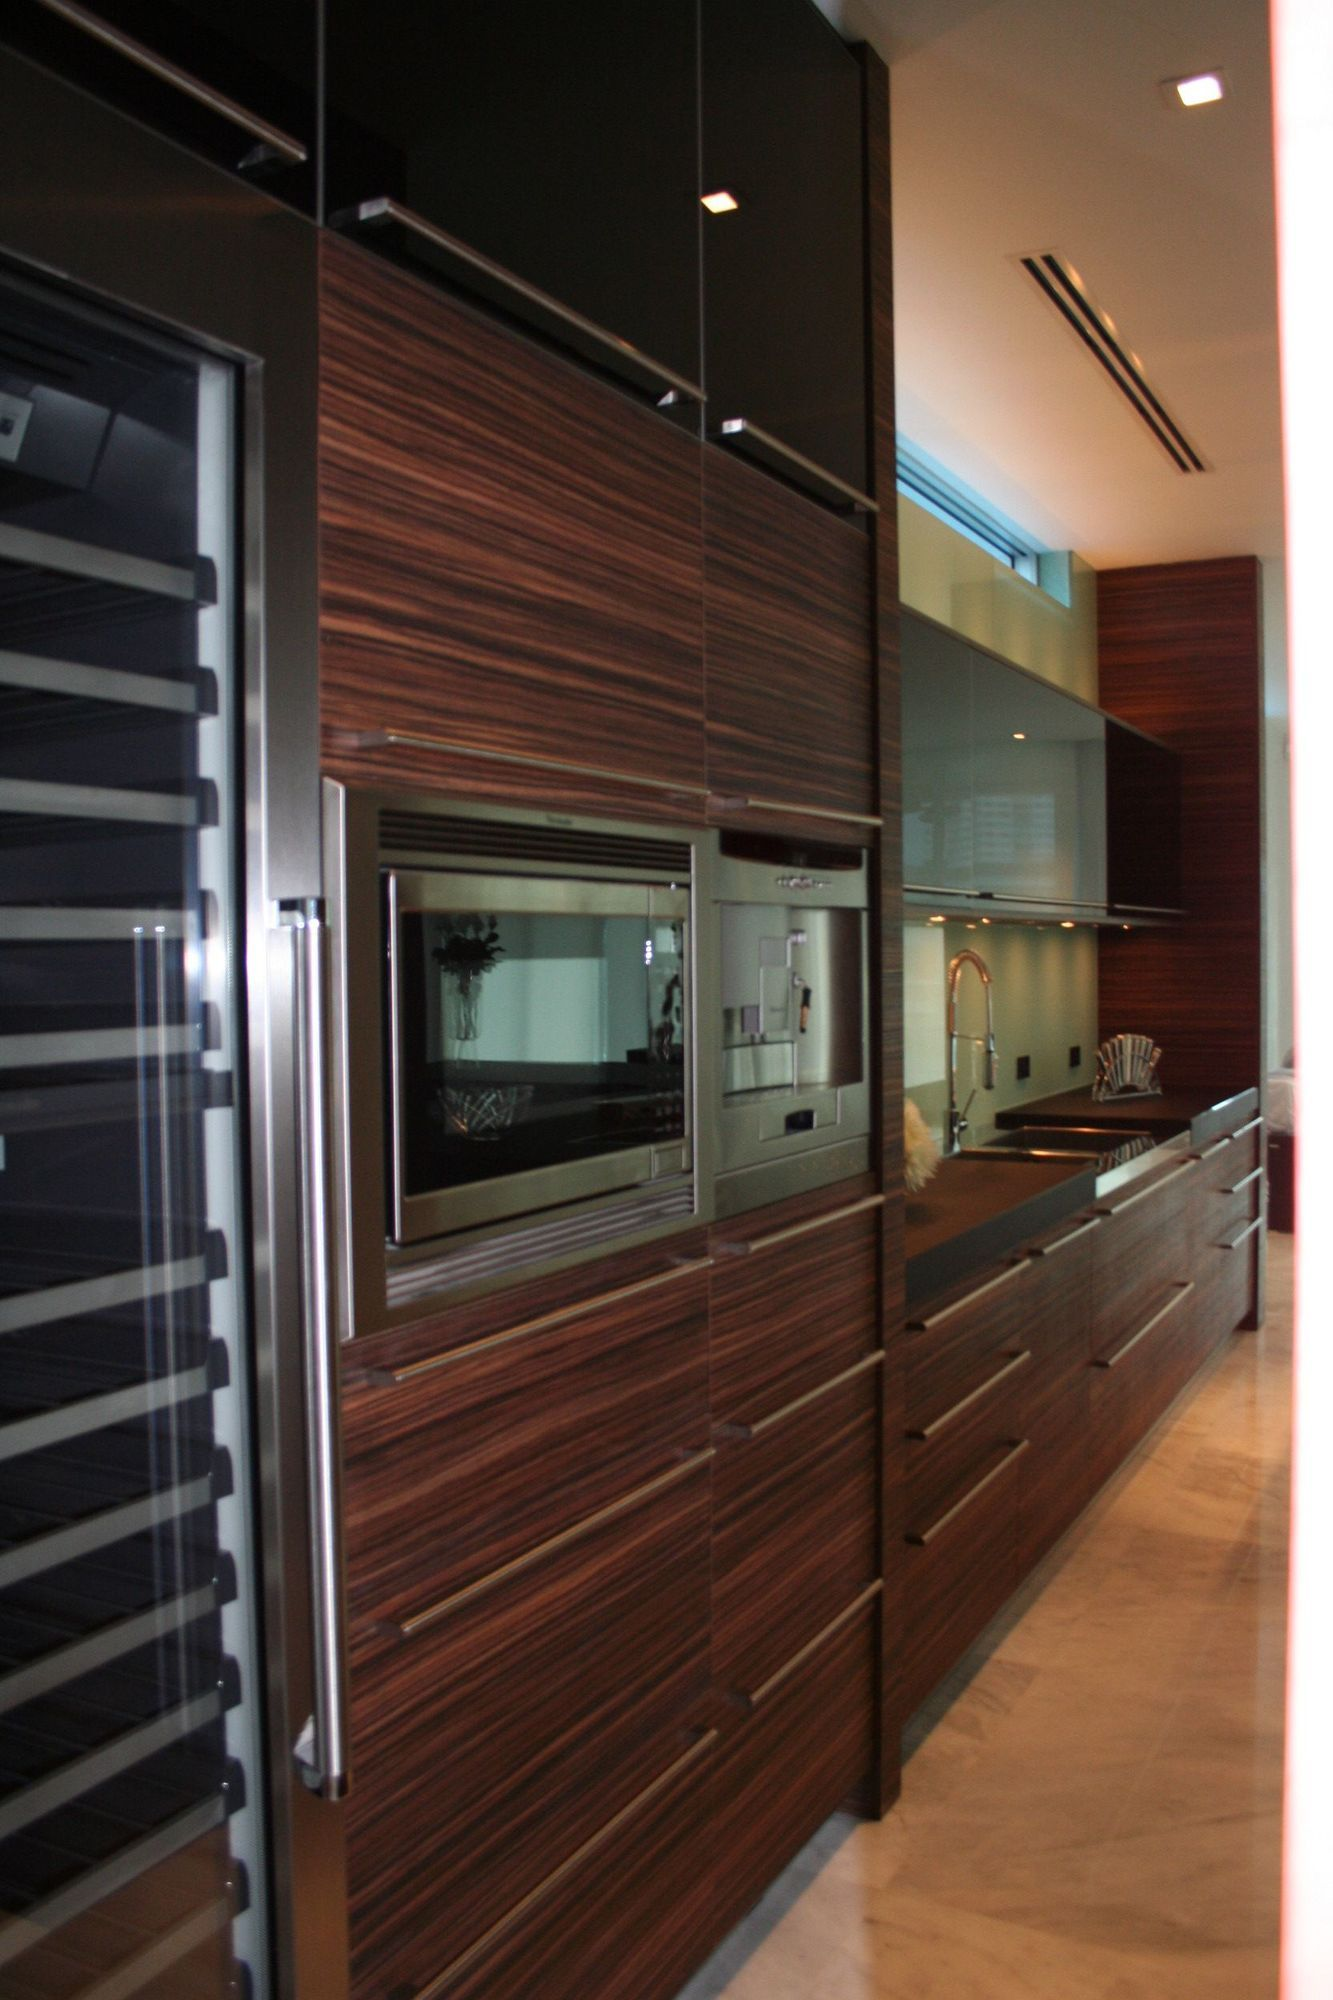 Kitchen Cabinets - What to Expect from I&E | I&E Cabinets